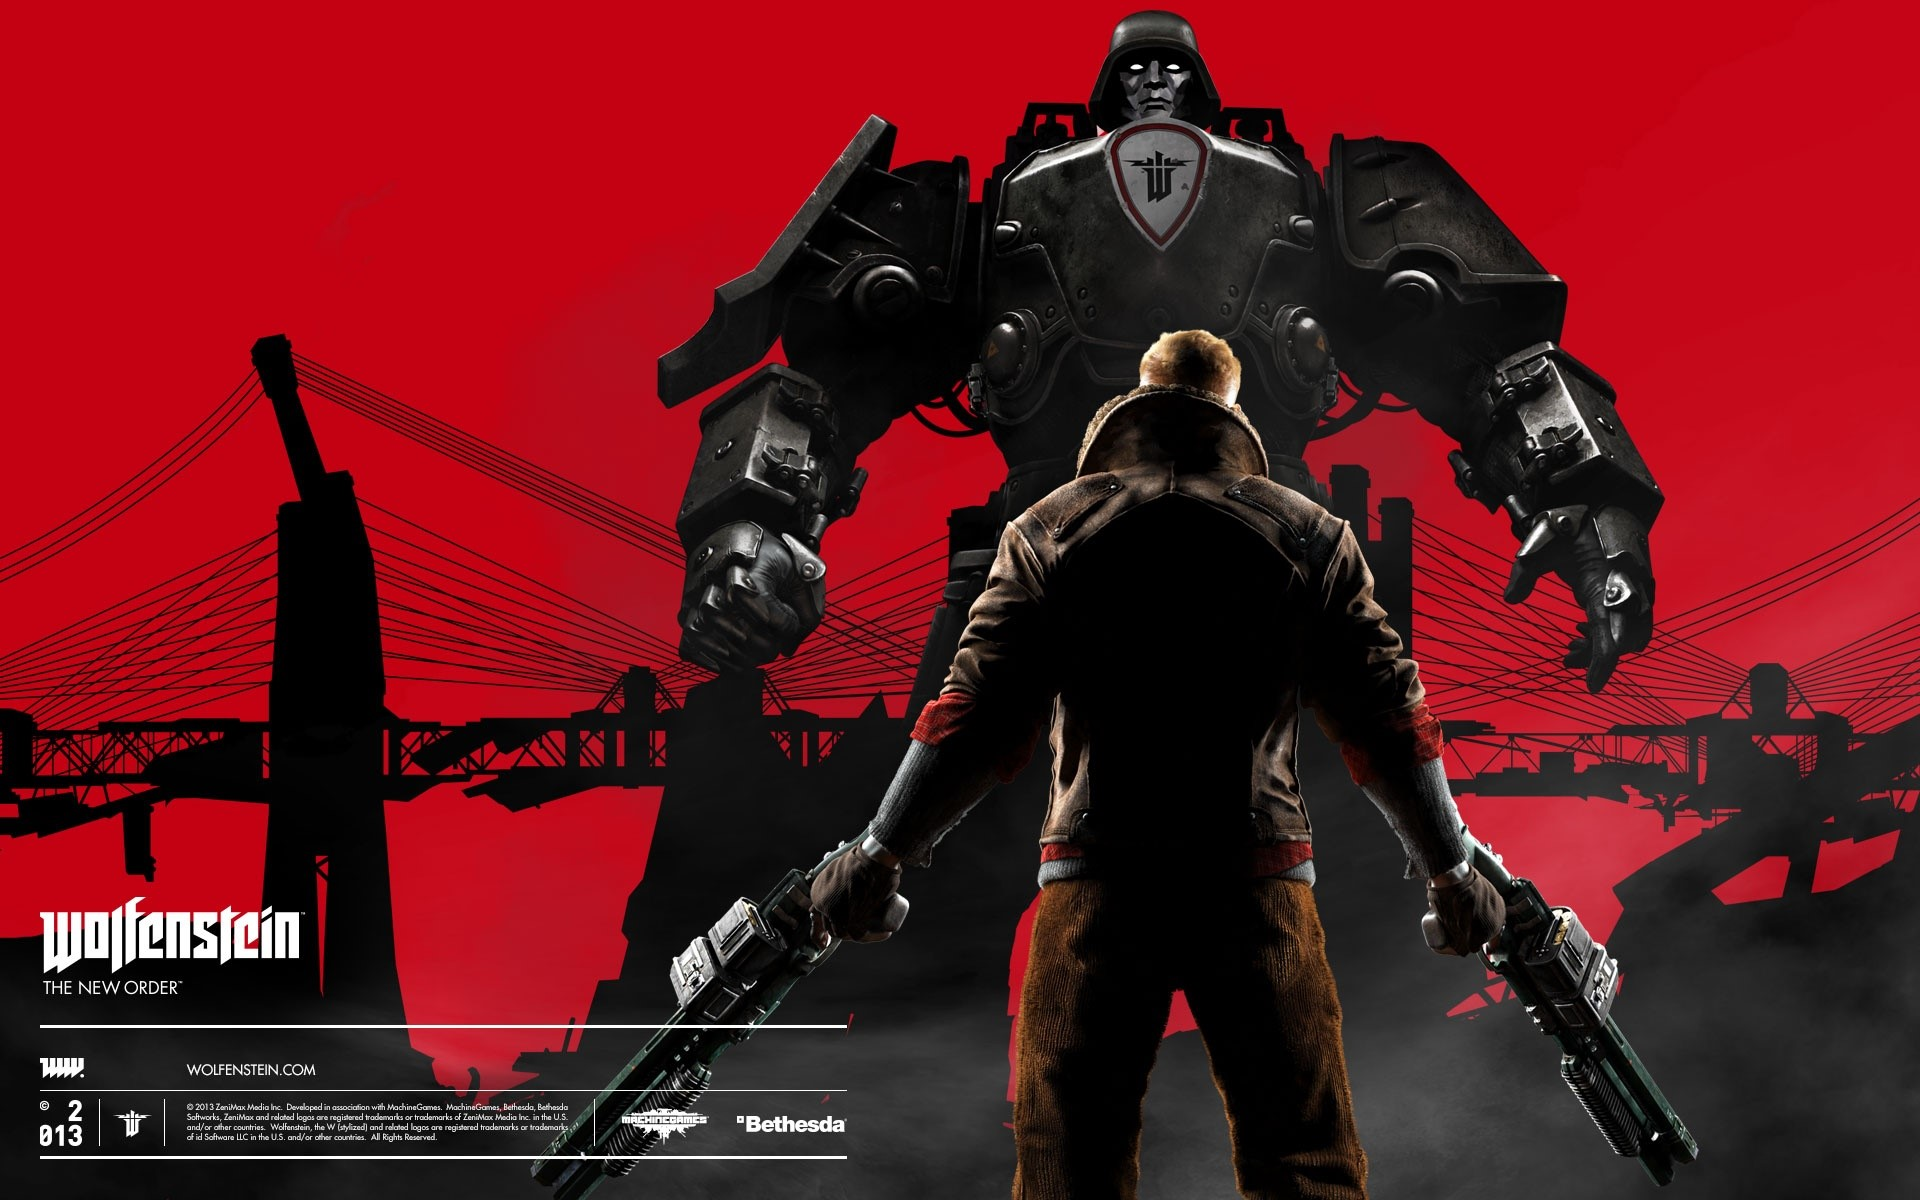 Wallpaper Wolfestein The New Order